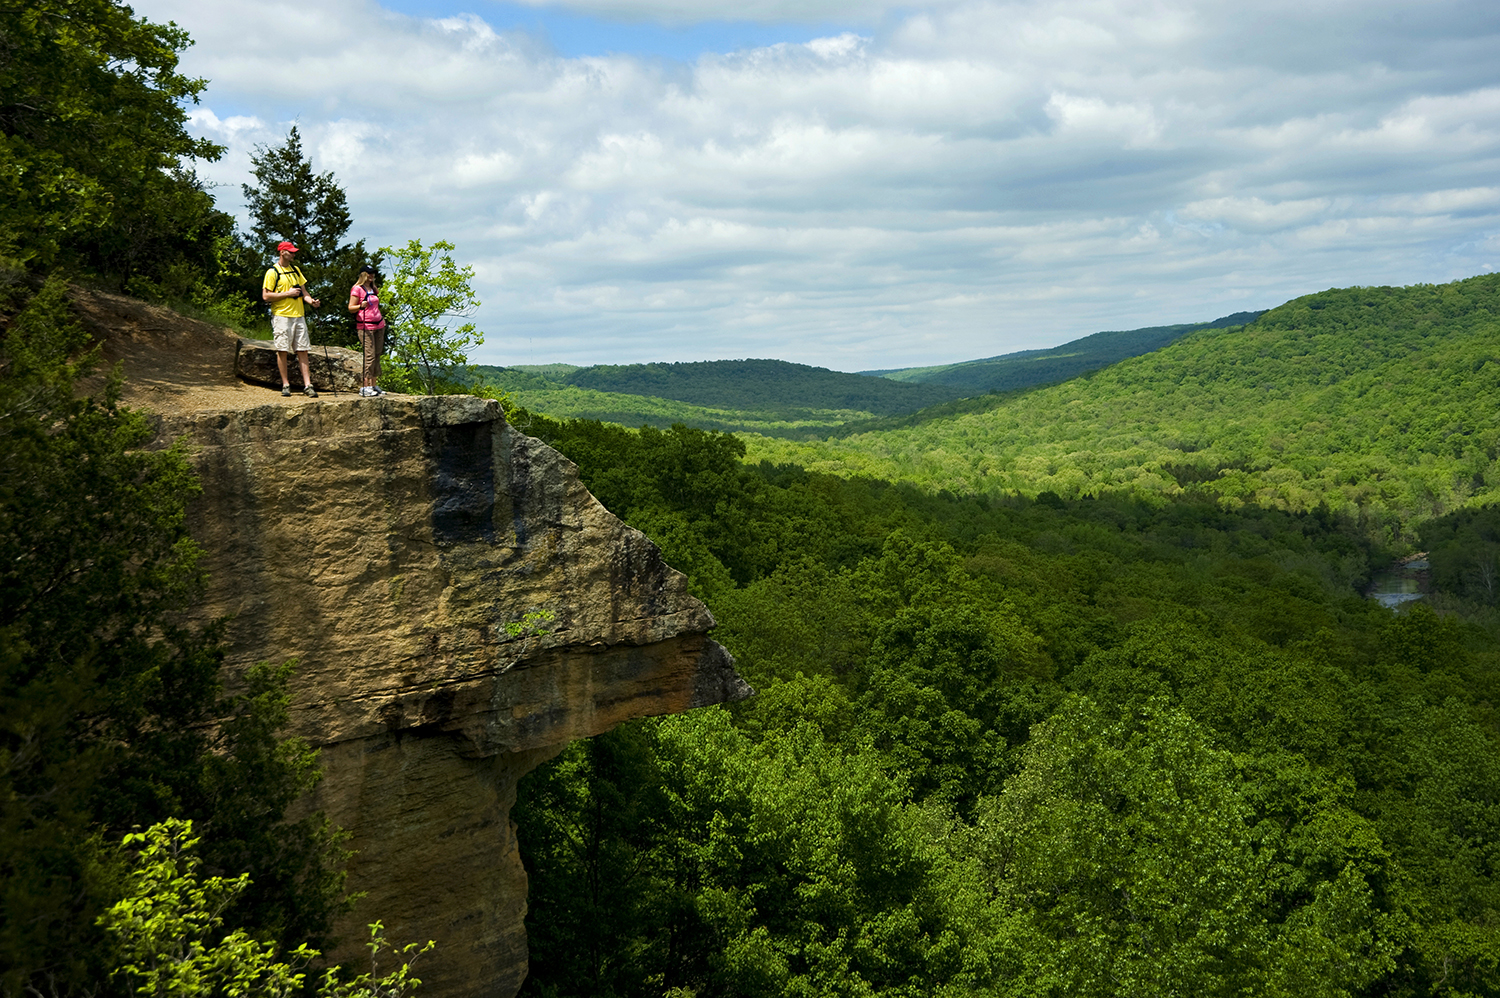 Devils-Den-State-Park-Yellow-Rock-Overlook-West-Fork.-Image-courtesy-of-Arkansas-Department-of-Parks-and-Tourism.jpg